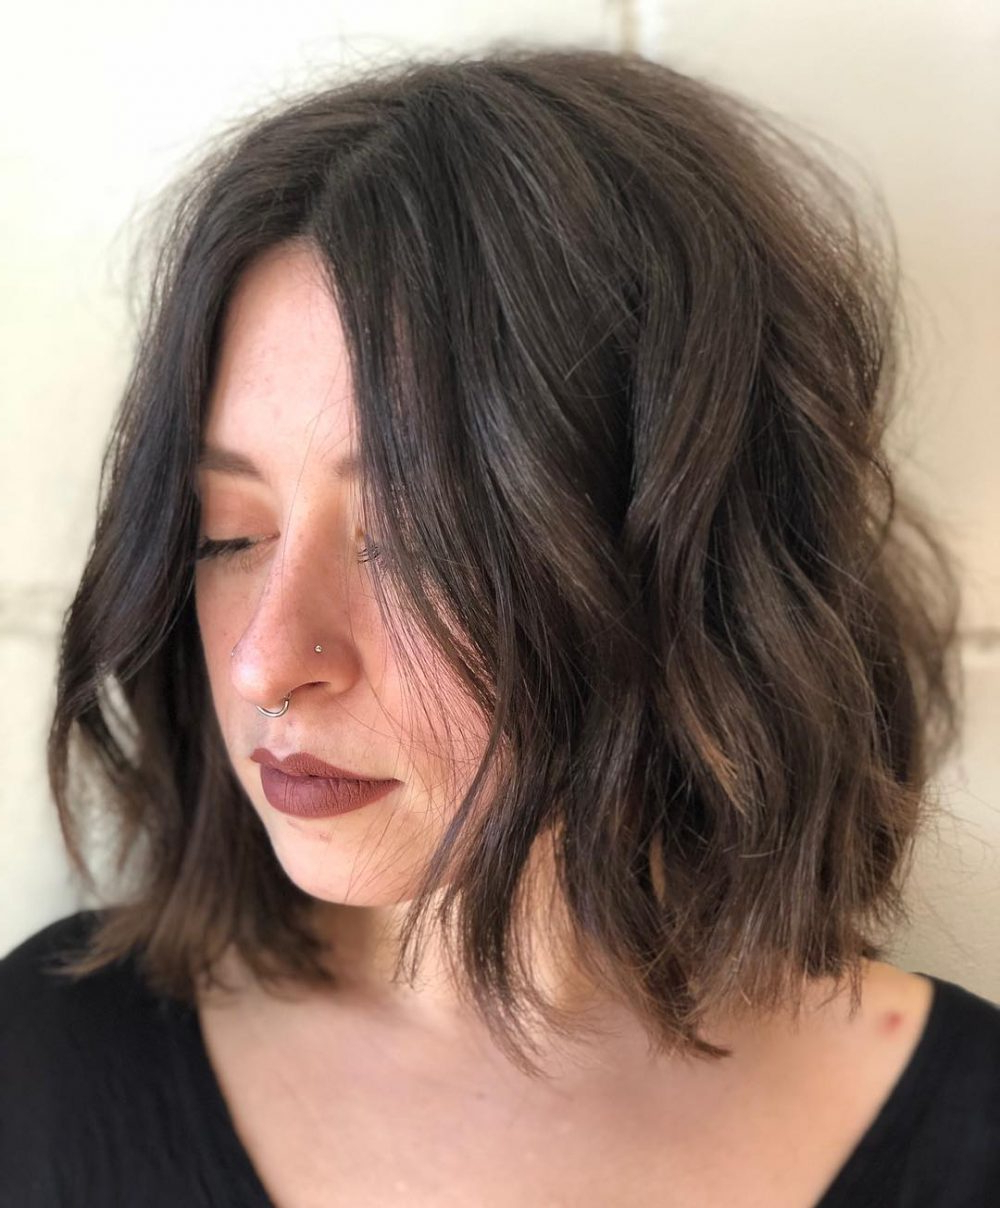 Top 25 Short Shag Haircuts To Get In 2020 Throughout Trendy Choppy Shag Hairstyles With Short Feathered Bangs (View 13 of 20)